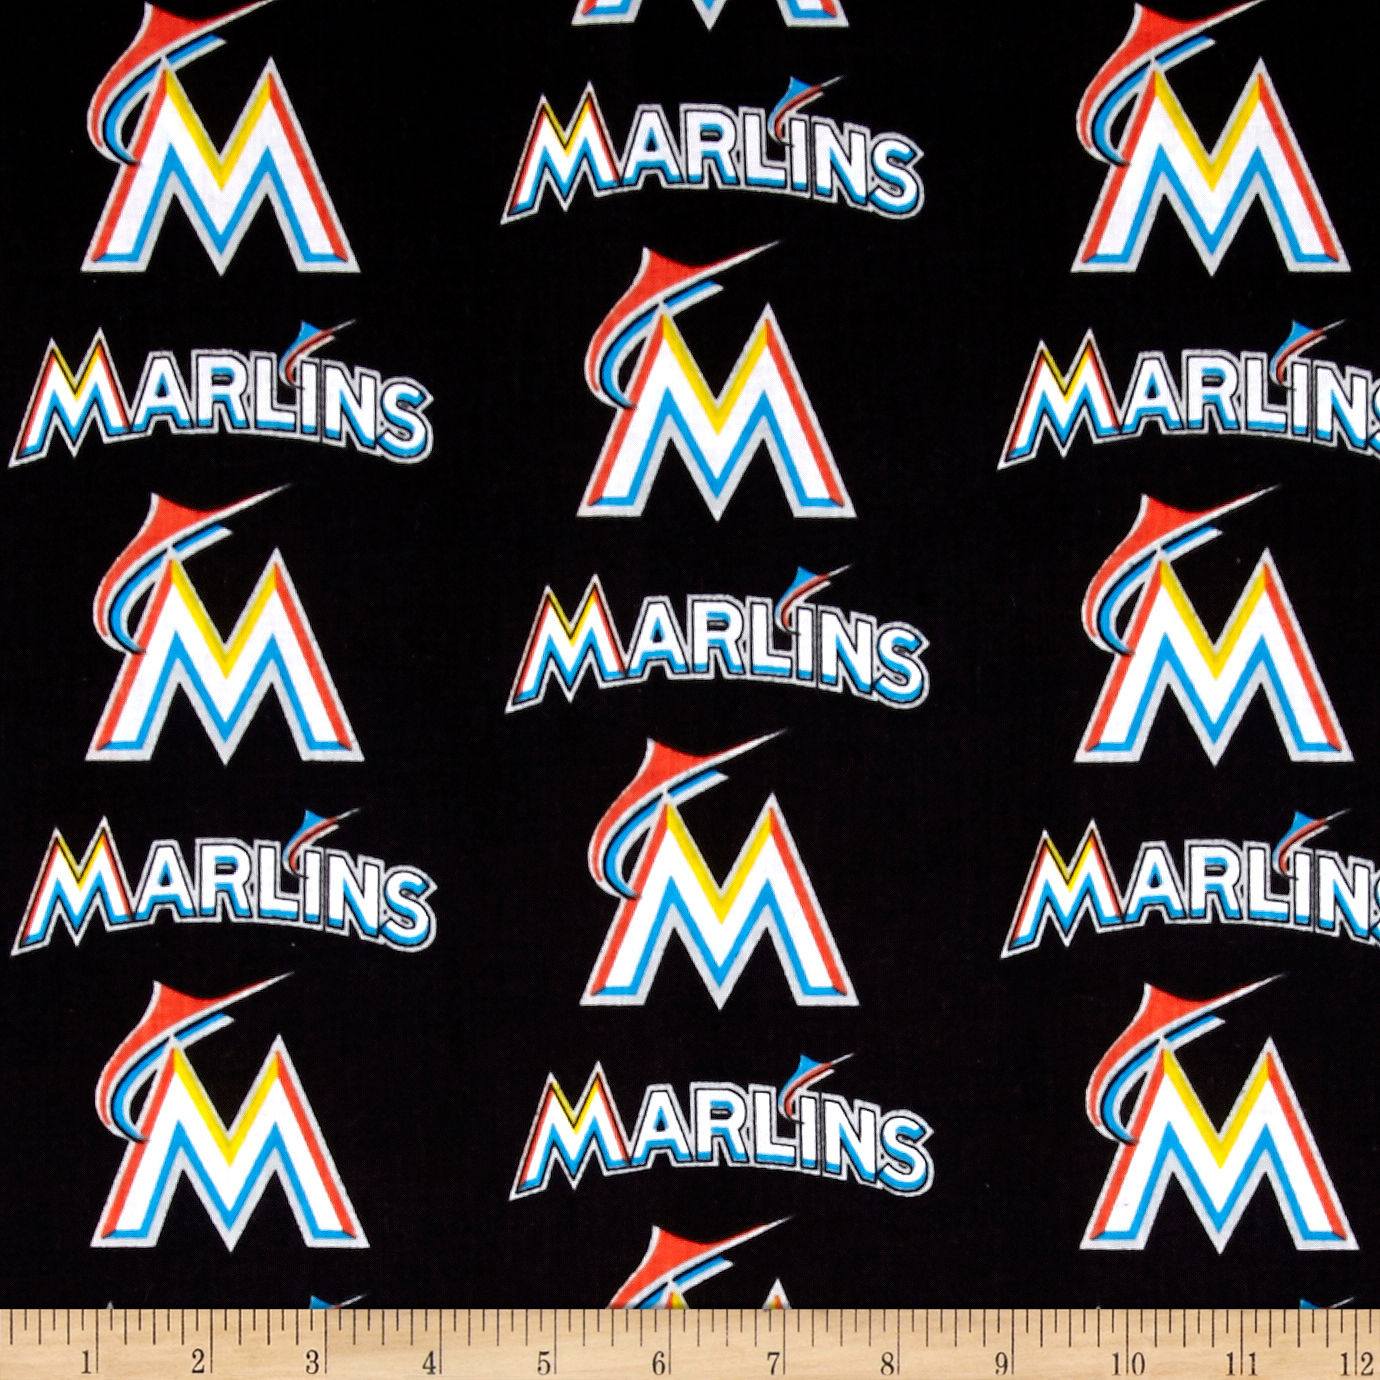 Maimi Marlins Cotton Broadcloth Multi Fabric by Fabric Traditions in USA